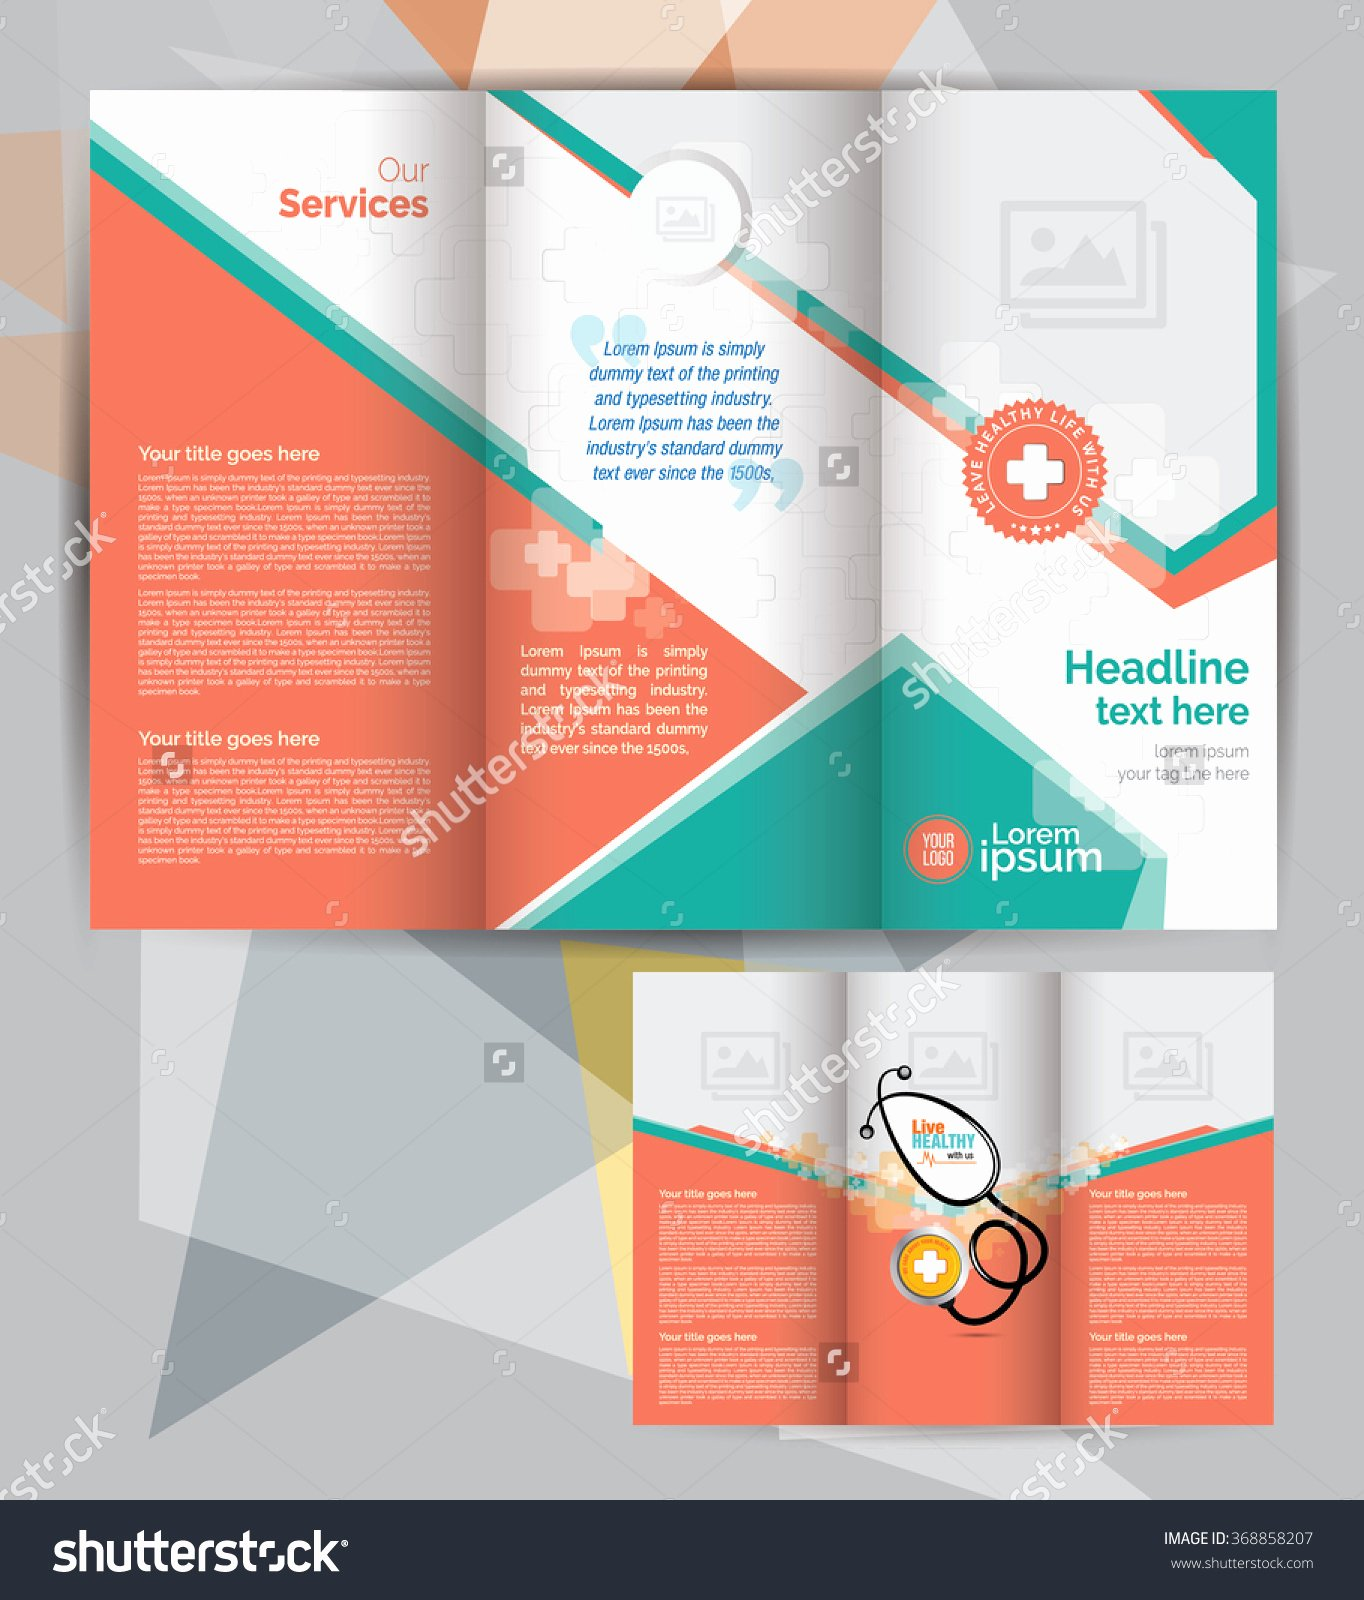 Free Medical Brochure Templates Portablegasgrillweber